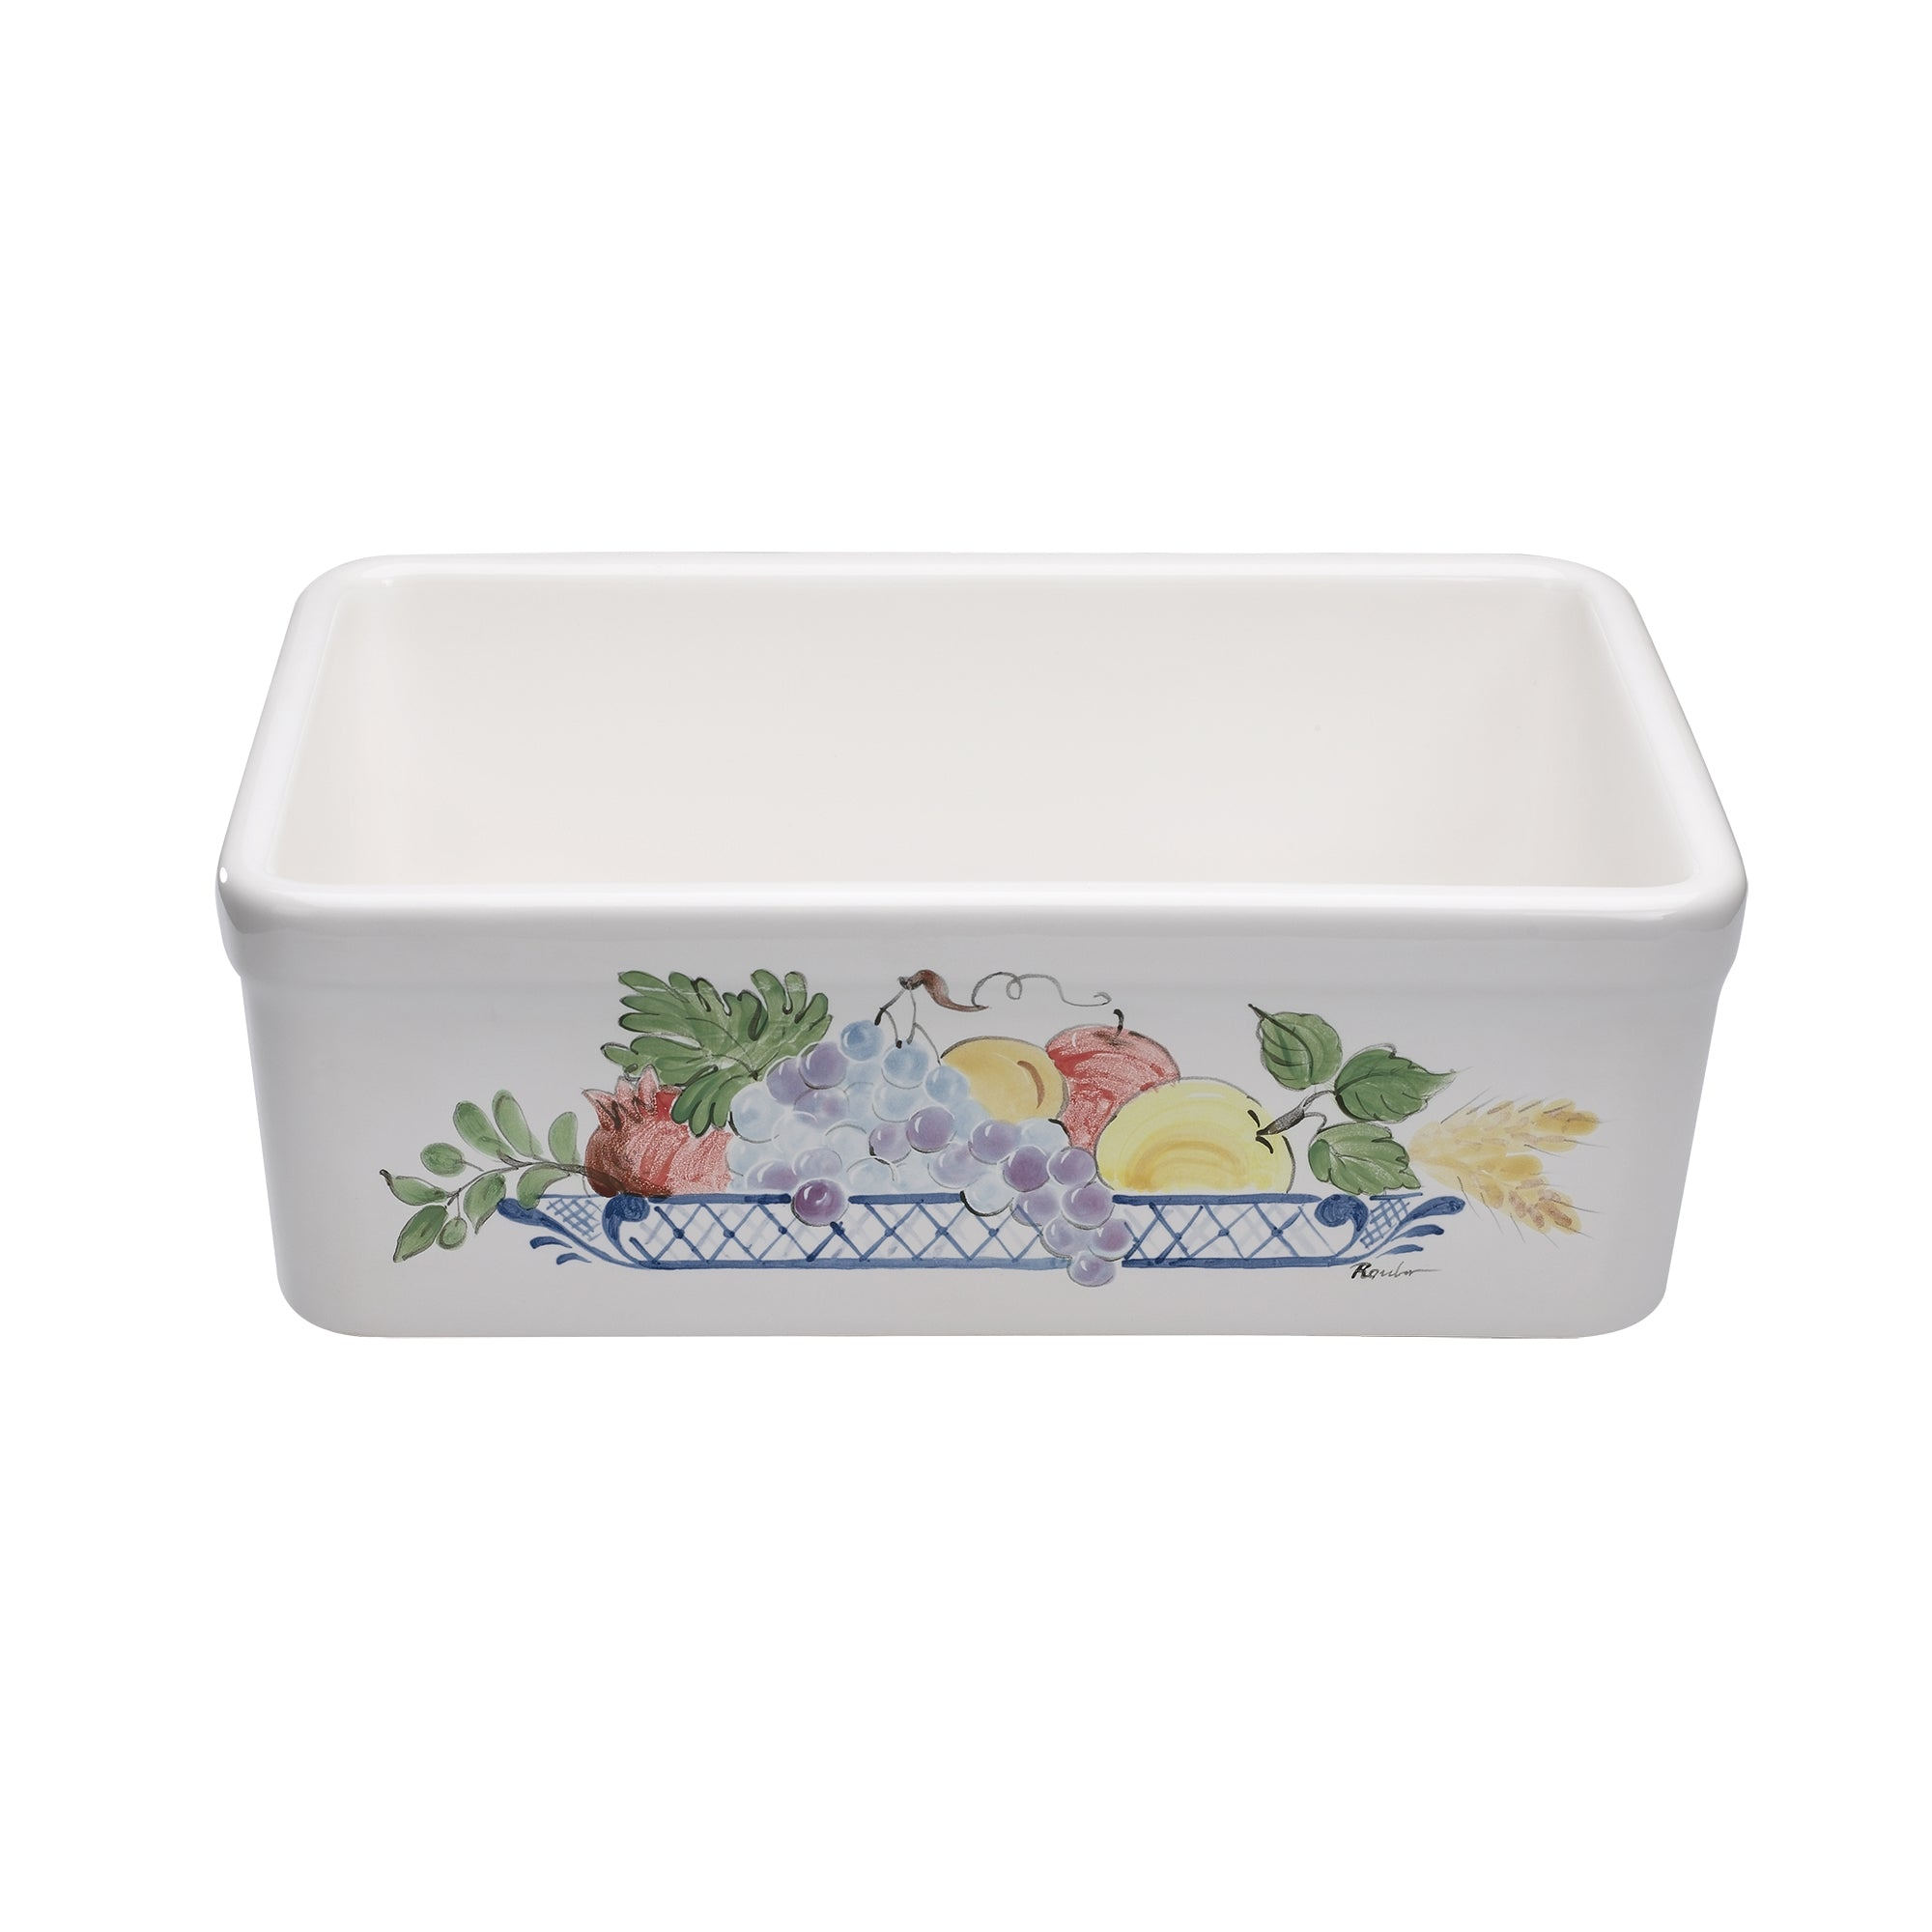 "26"" Single bowl hand-painted fireclay kitchen sink"